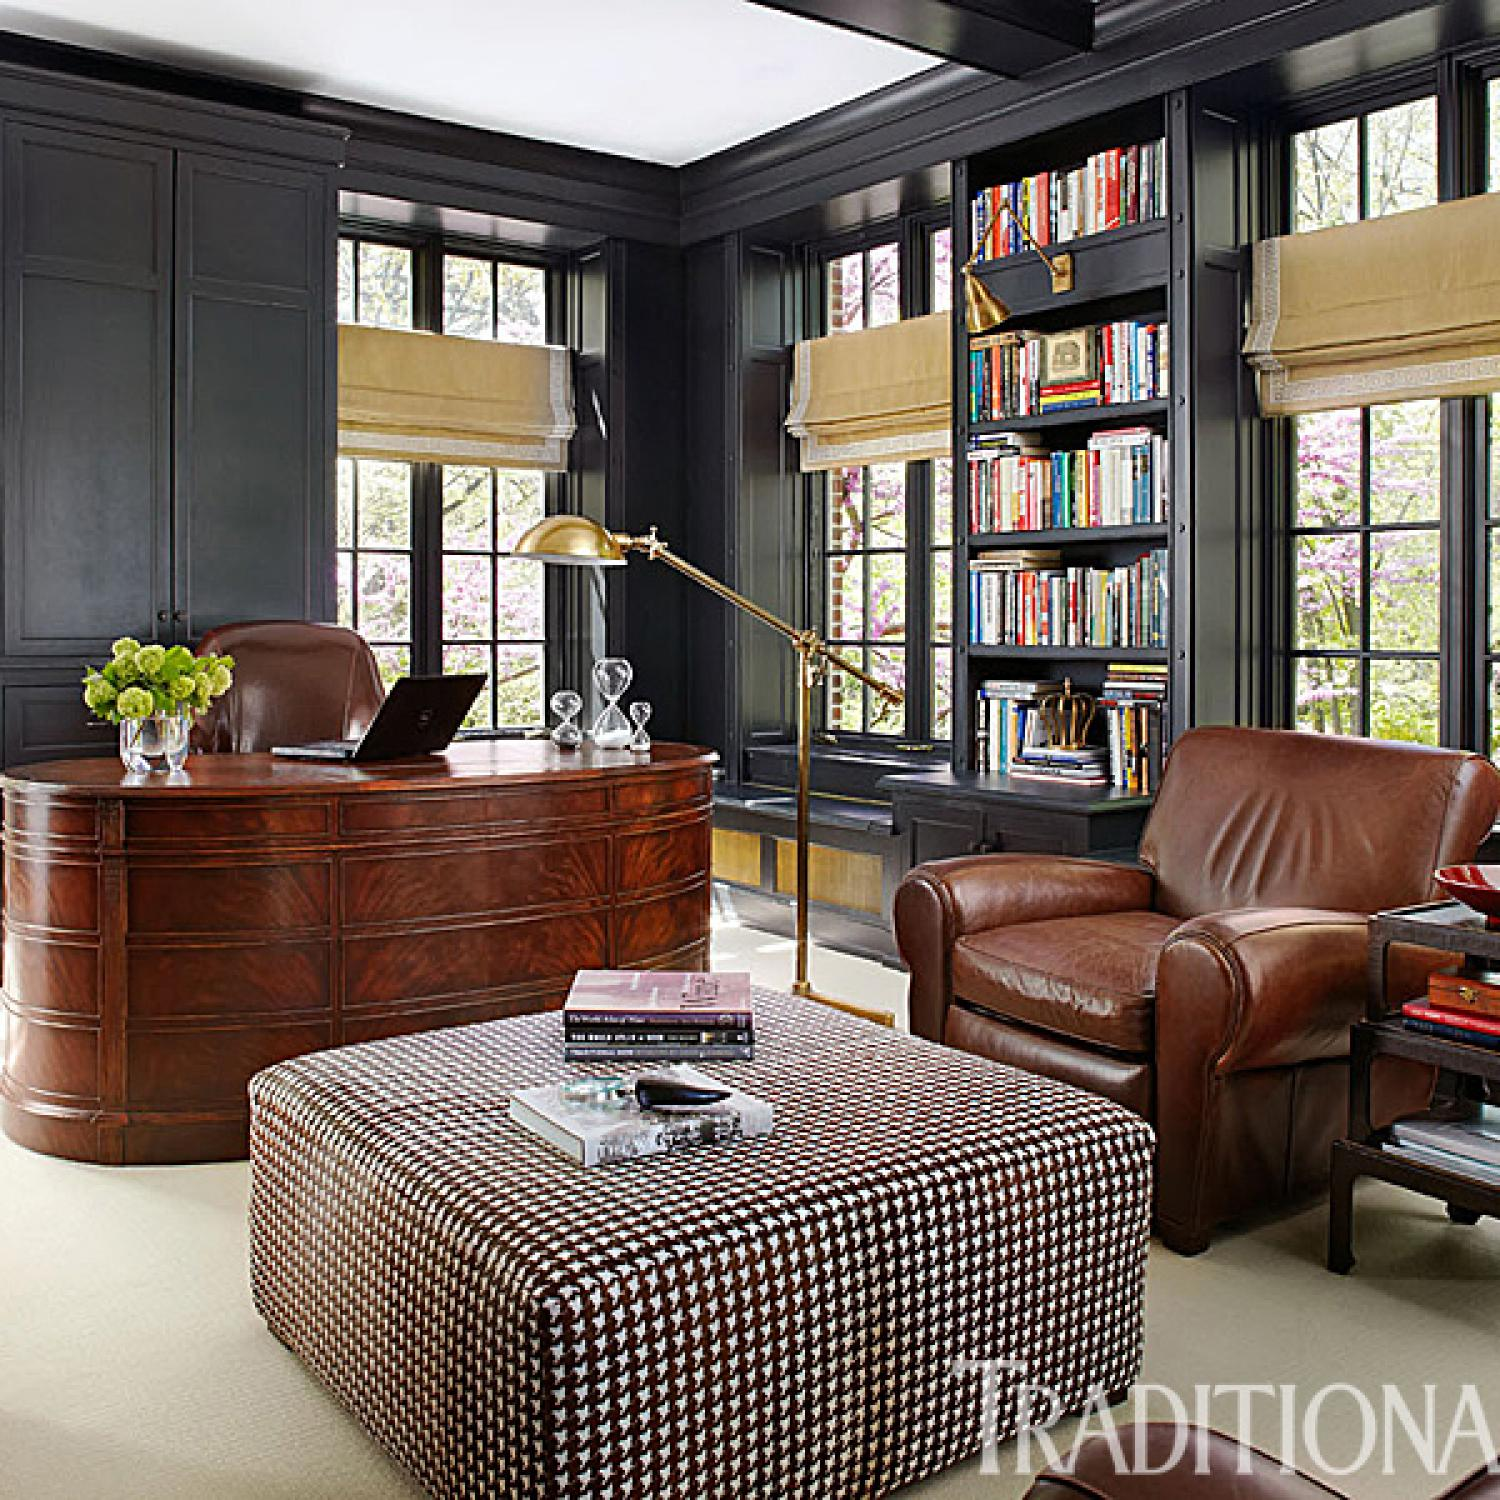 Handsome Rooms With A Masculine Vibe Traditional Home